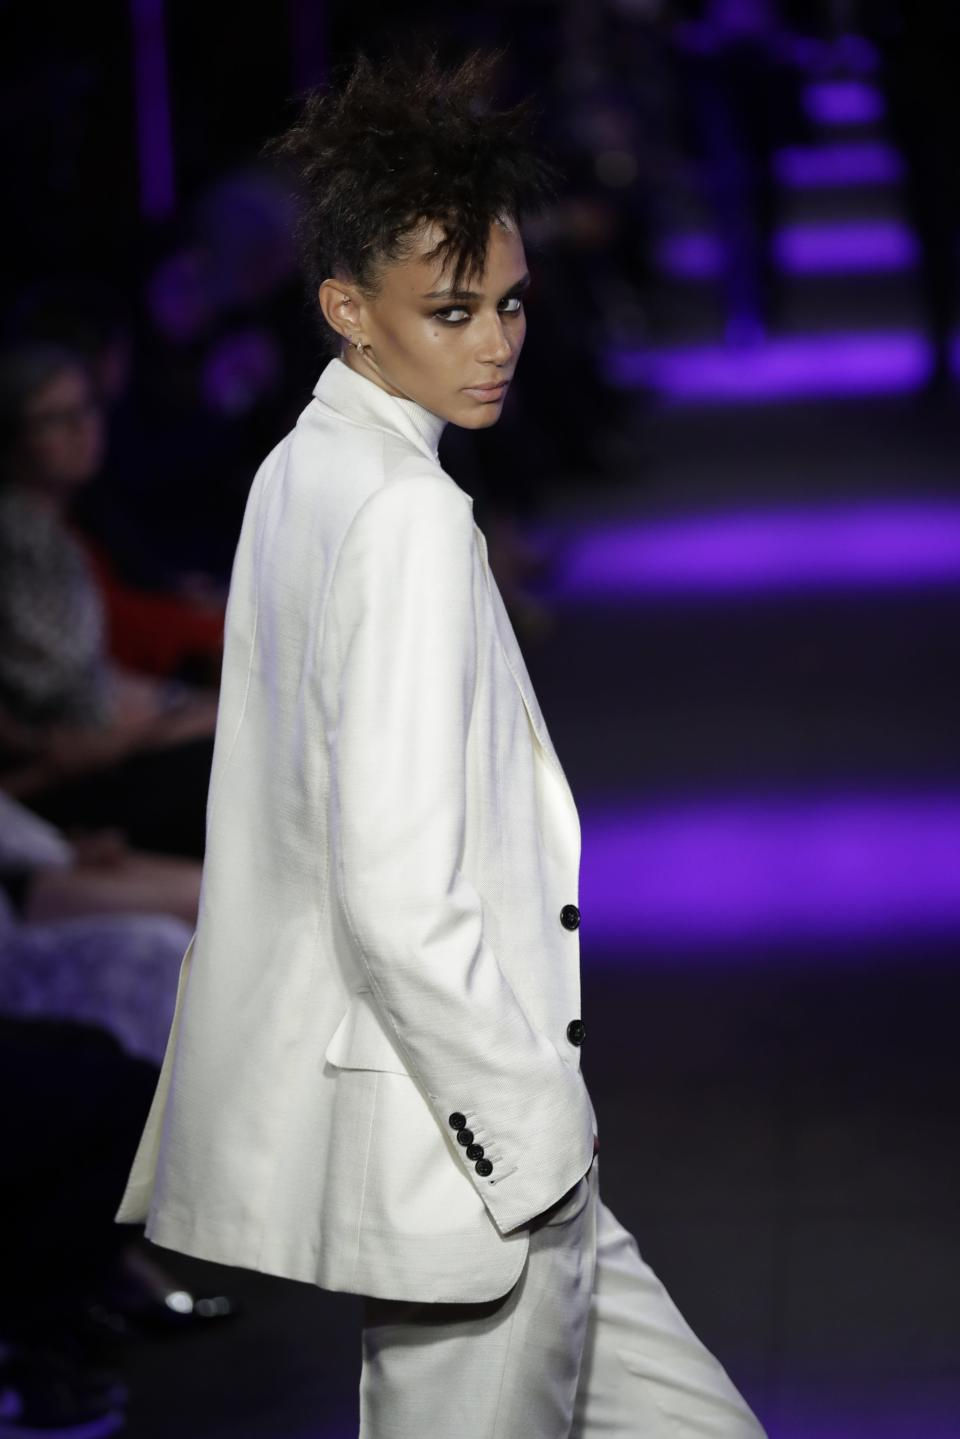 Fashion from the Tom Ford collection is modeled Monday, Sept. 9, 2019, in New York. (AP Photo/Frank Franklin II)